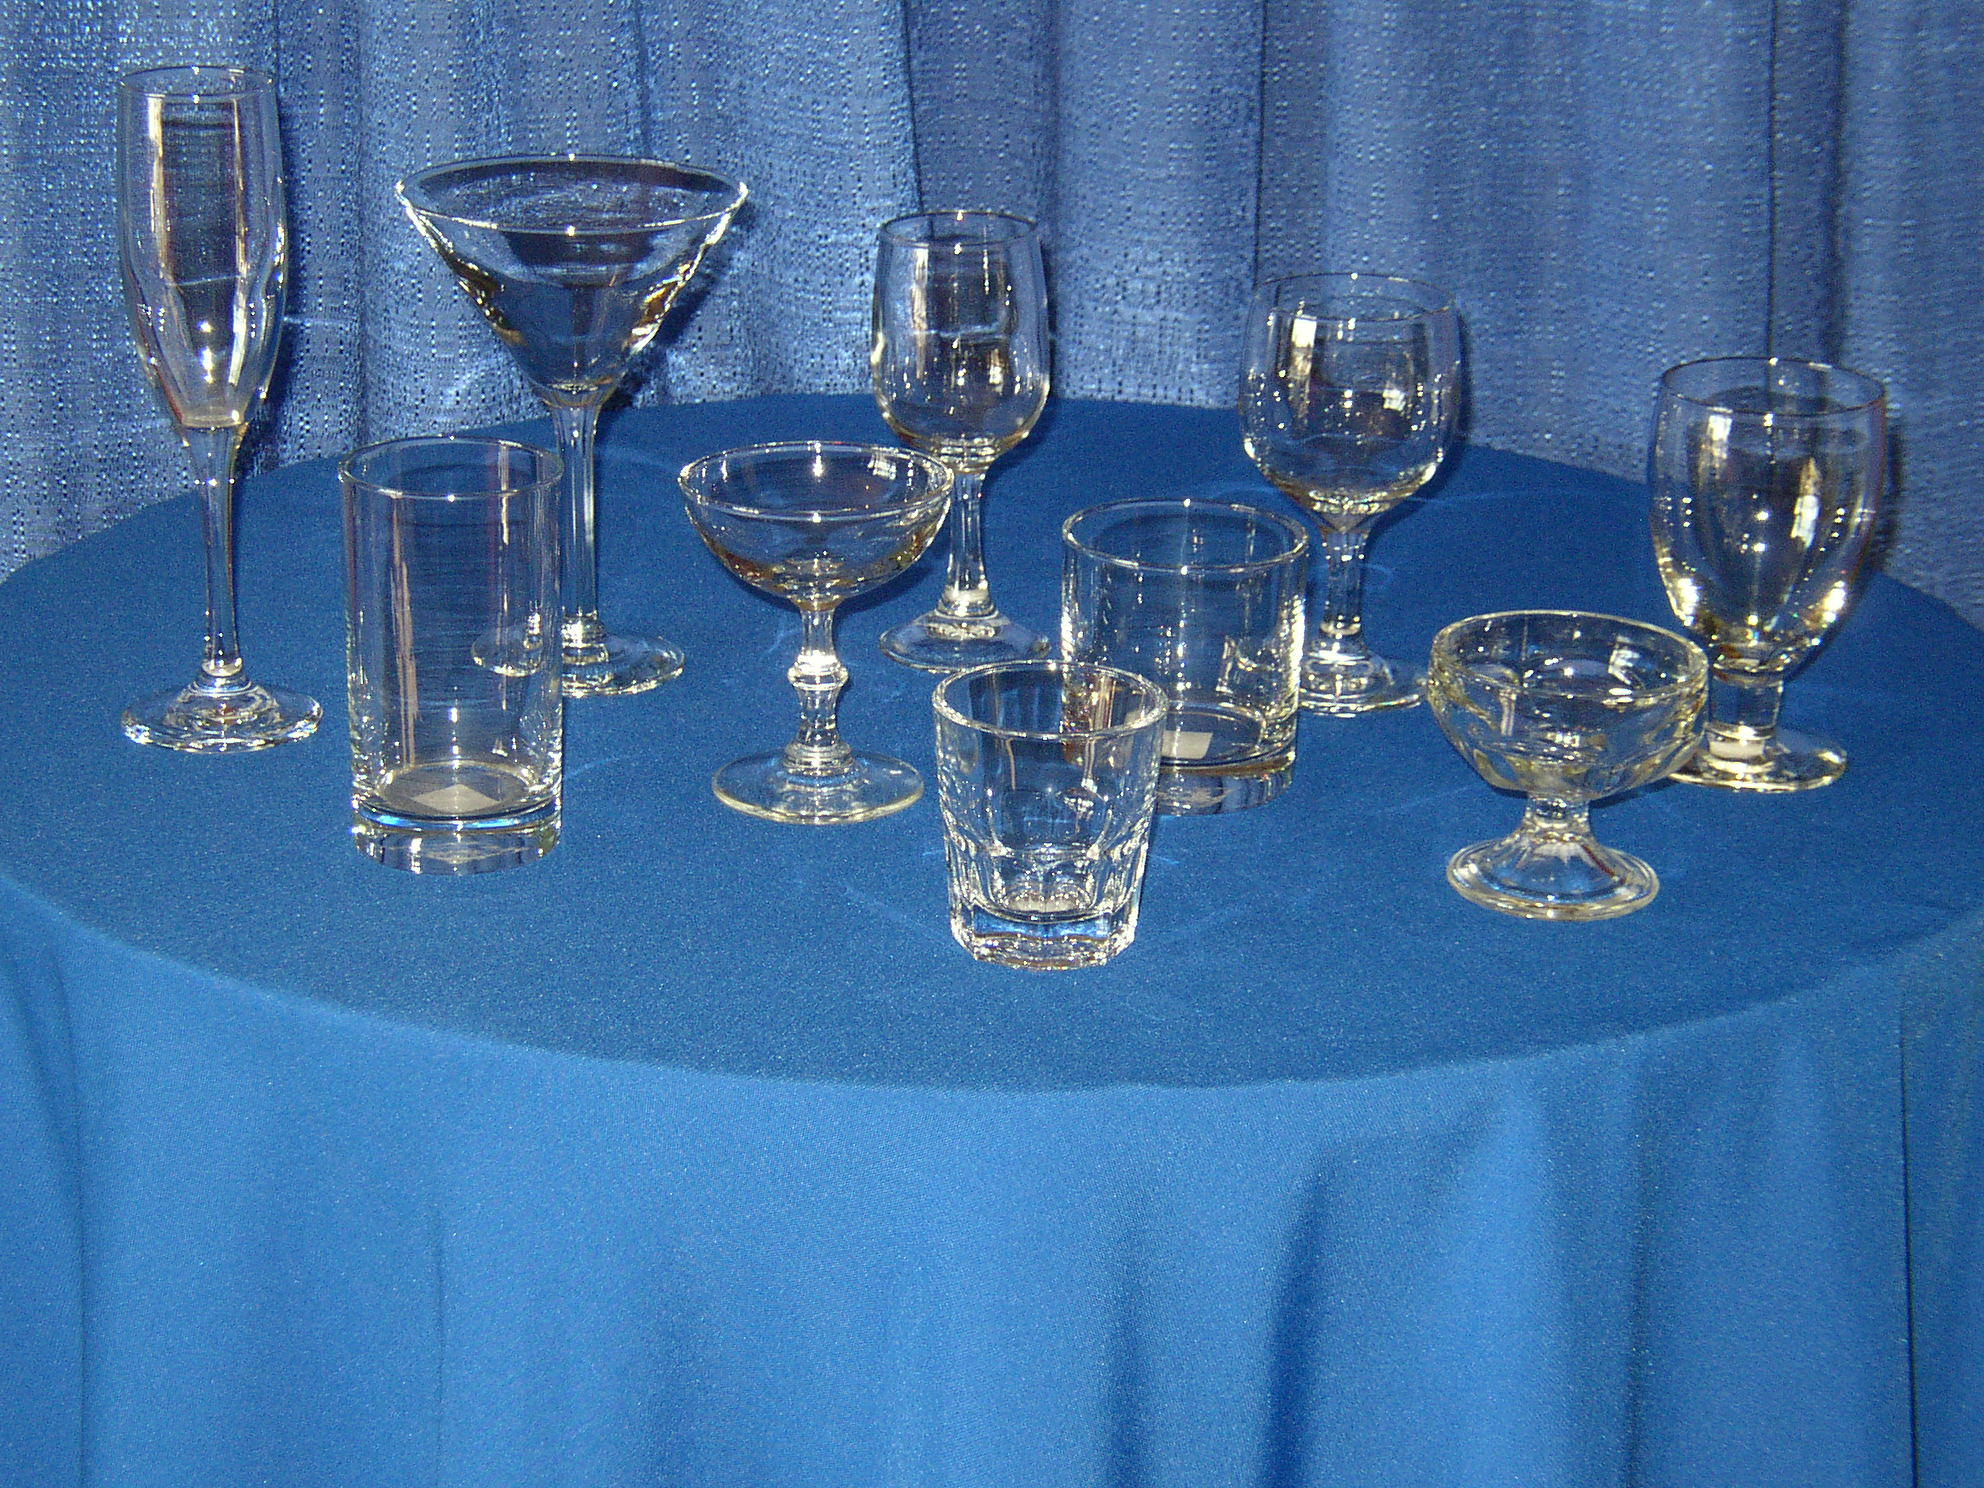 Rental Stemware & Glassware for your Event